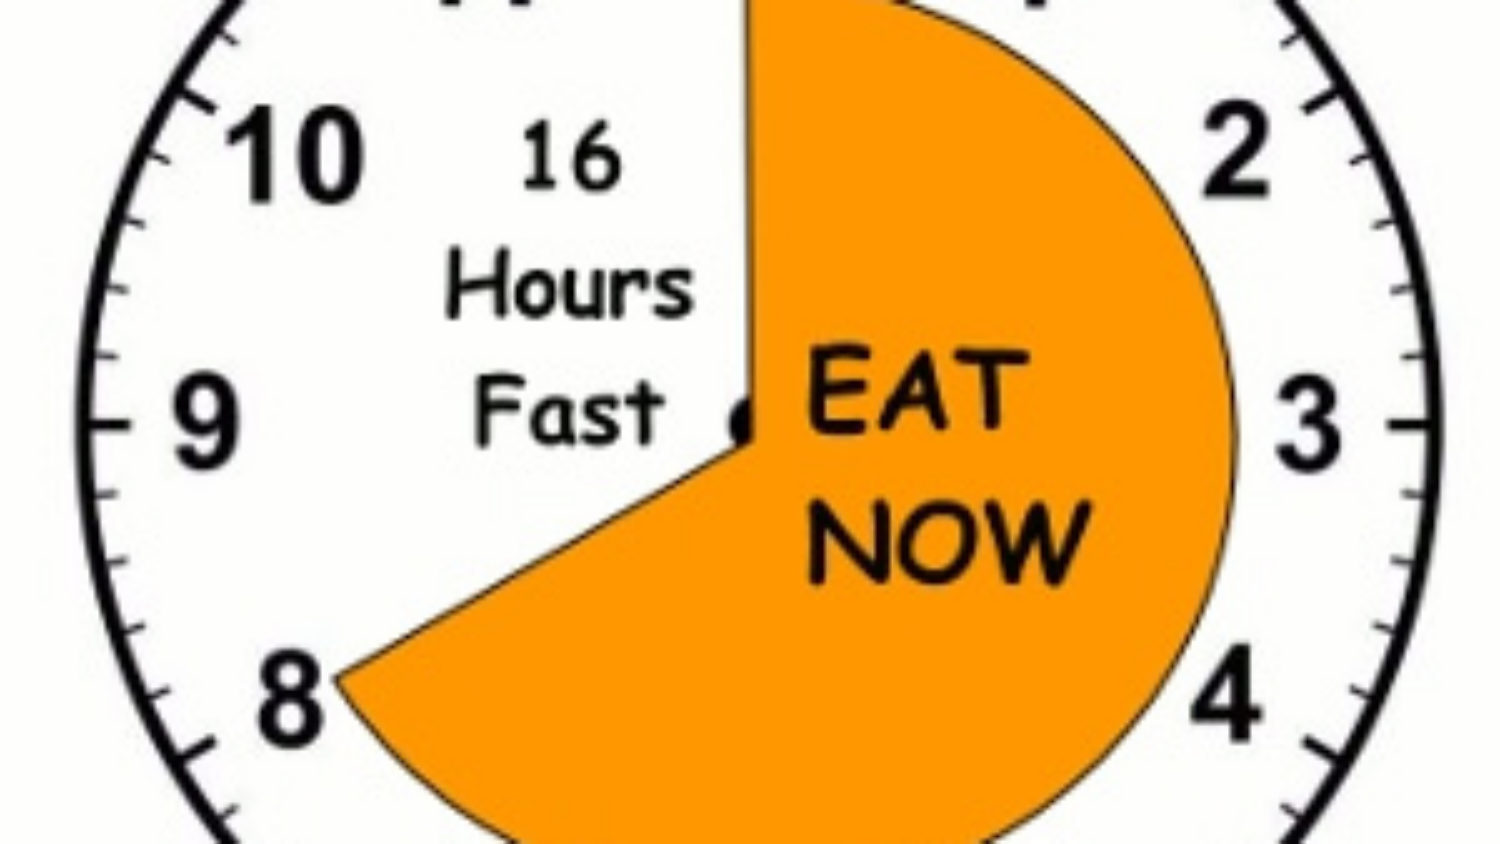 Guide to Intermittent Fasting